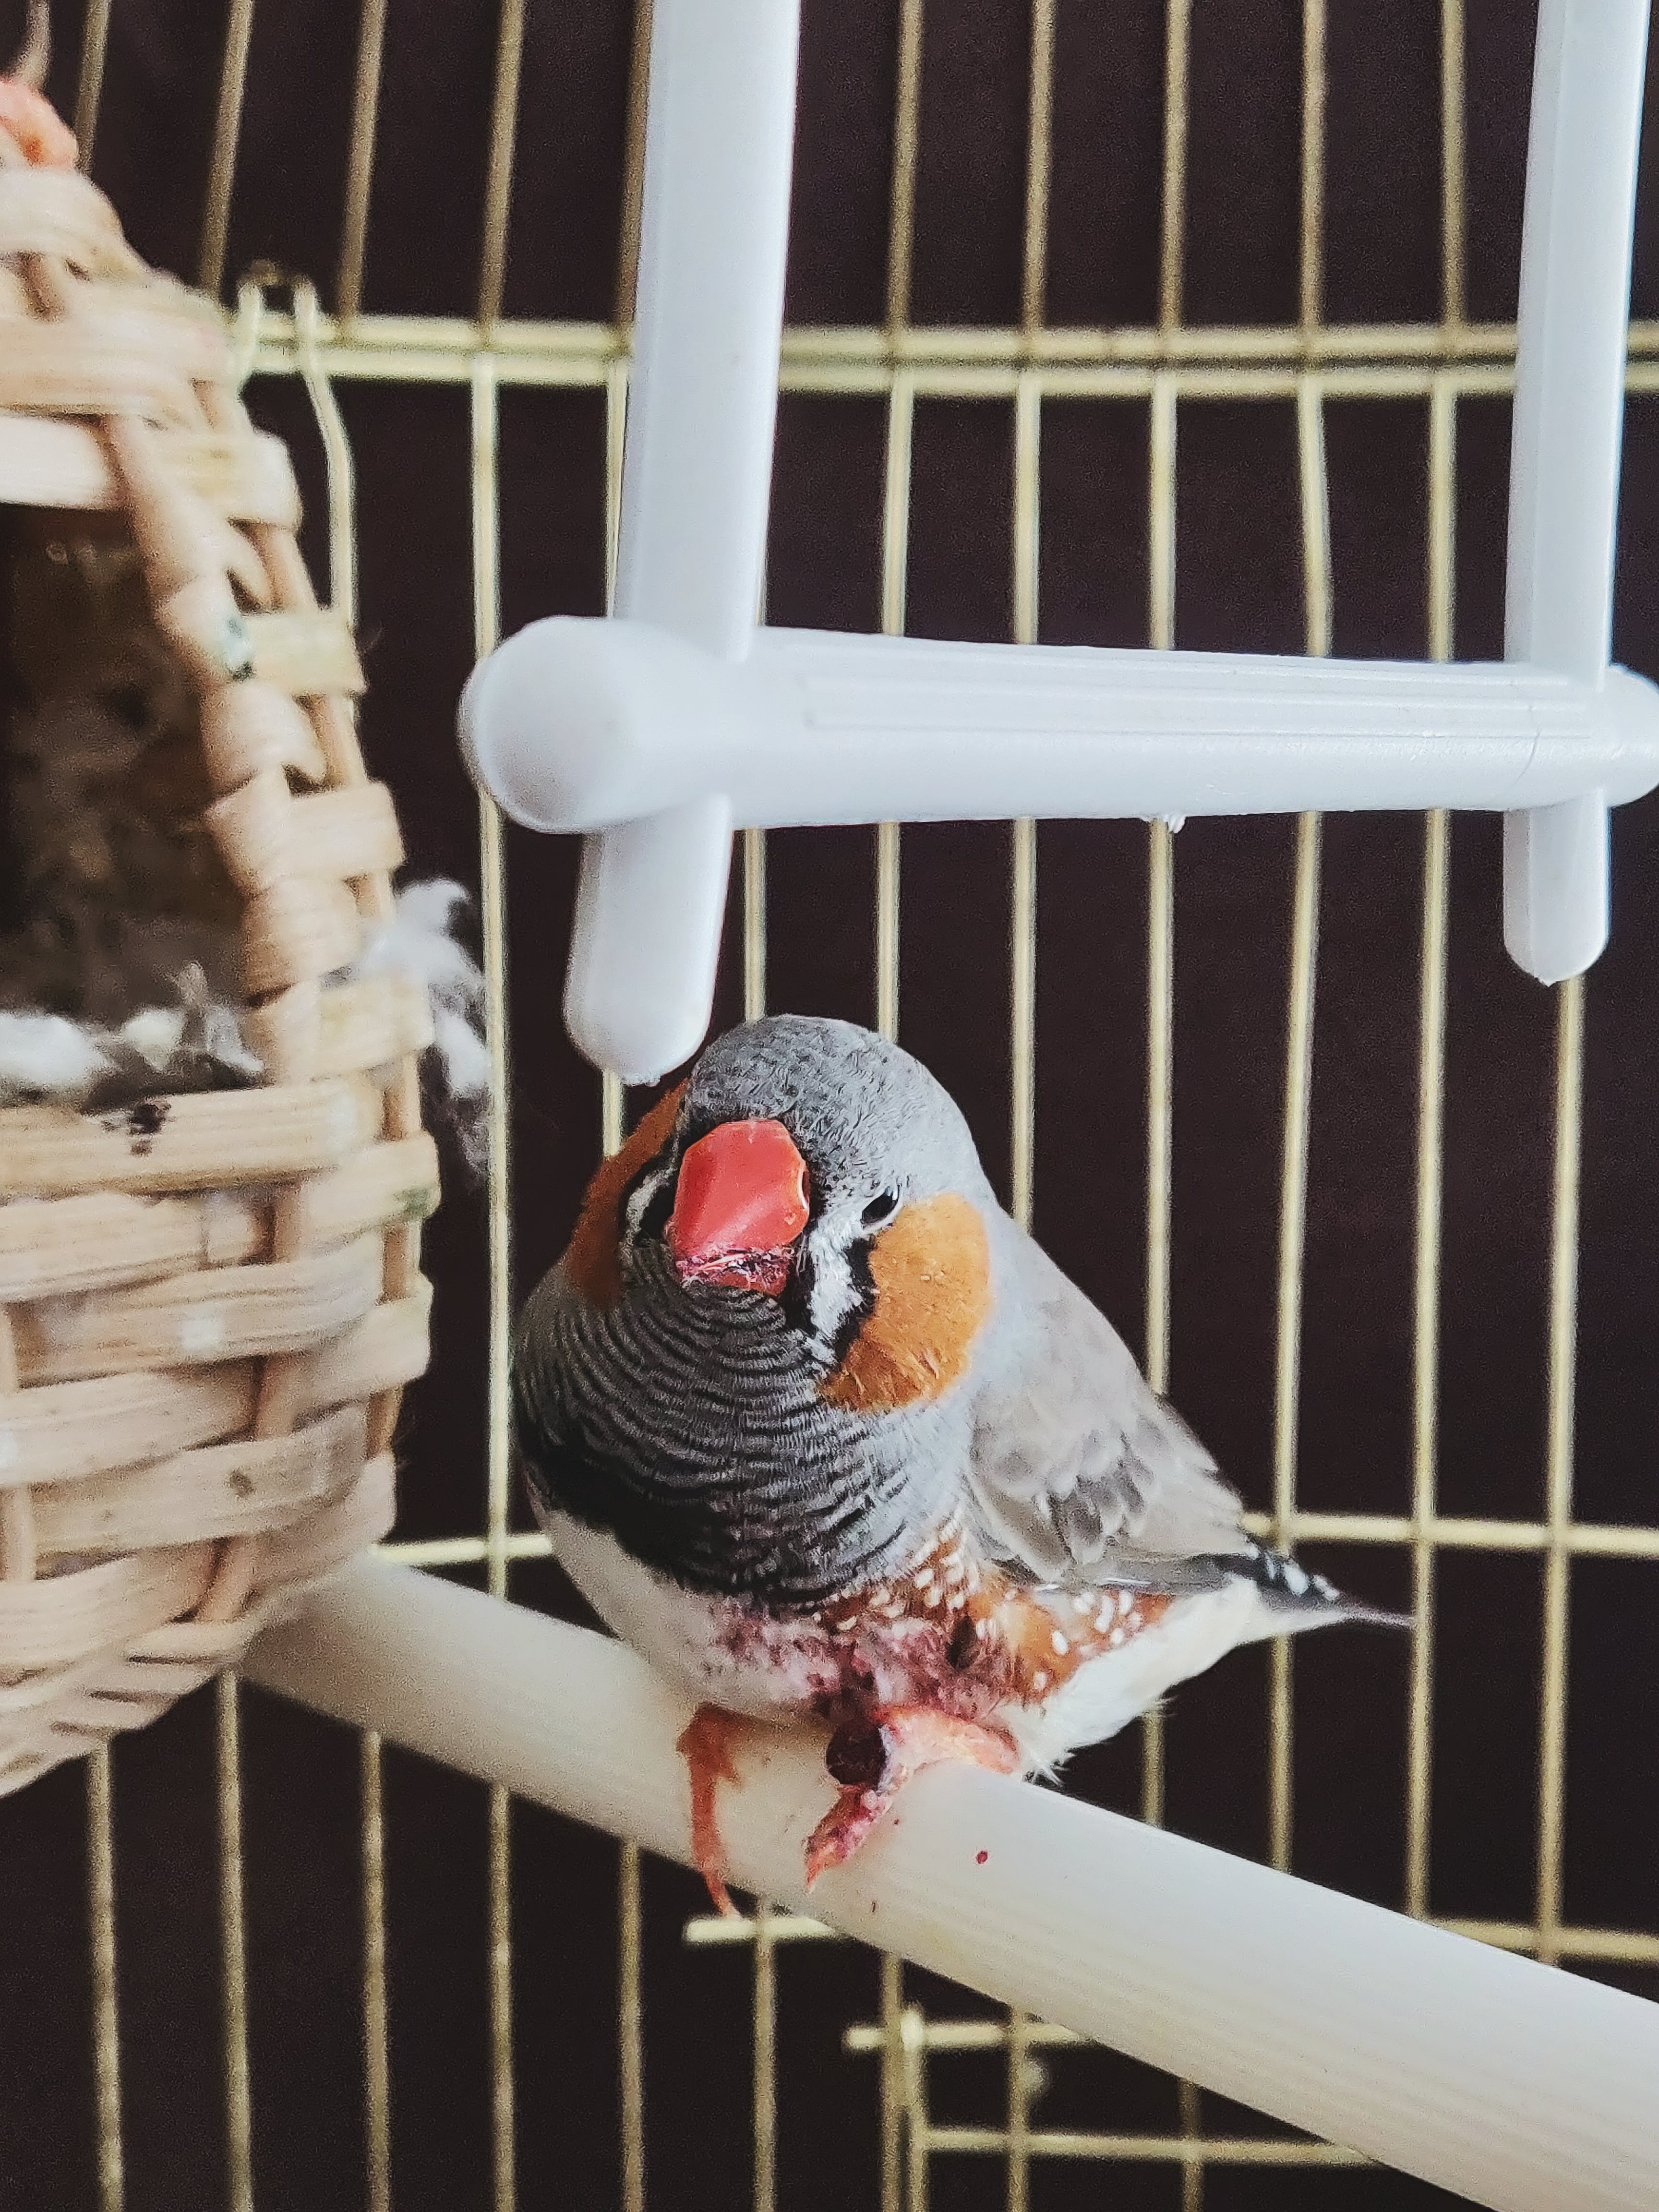 Bird Perched Inside the Cage